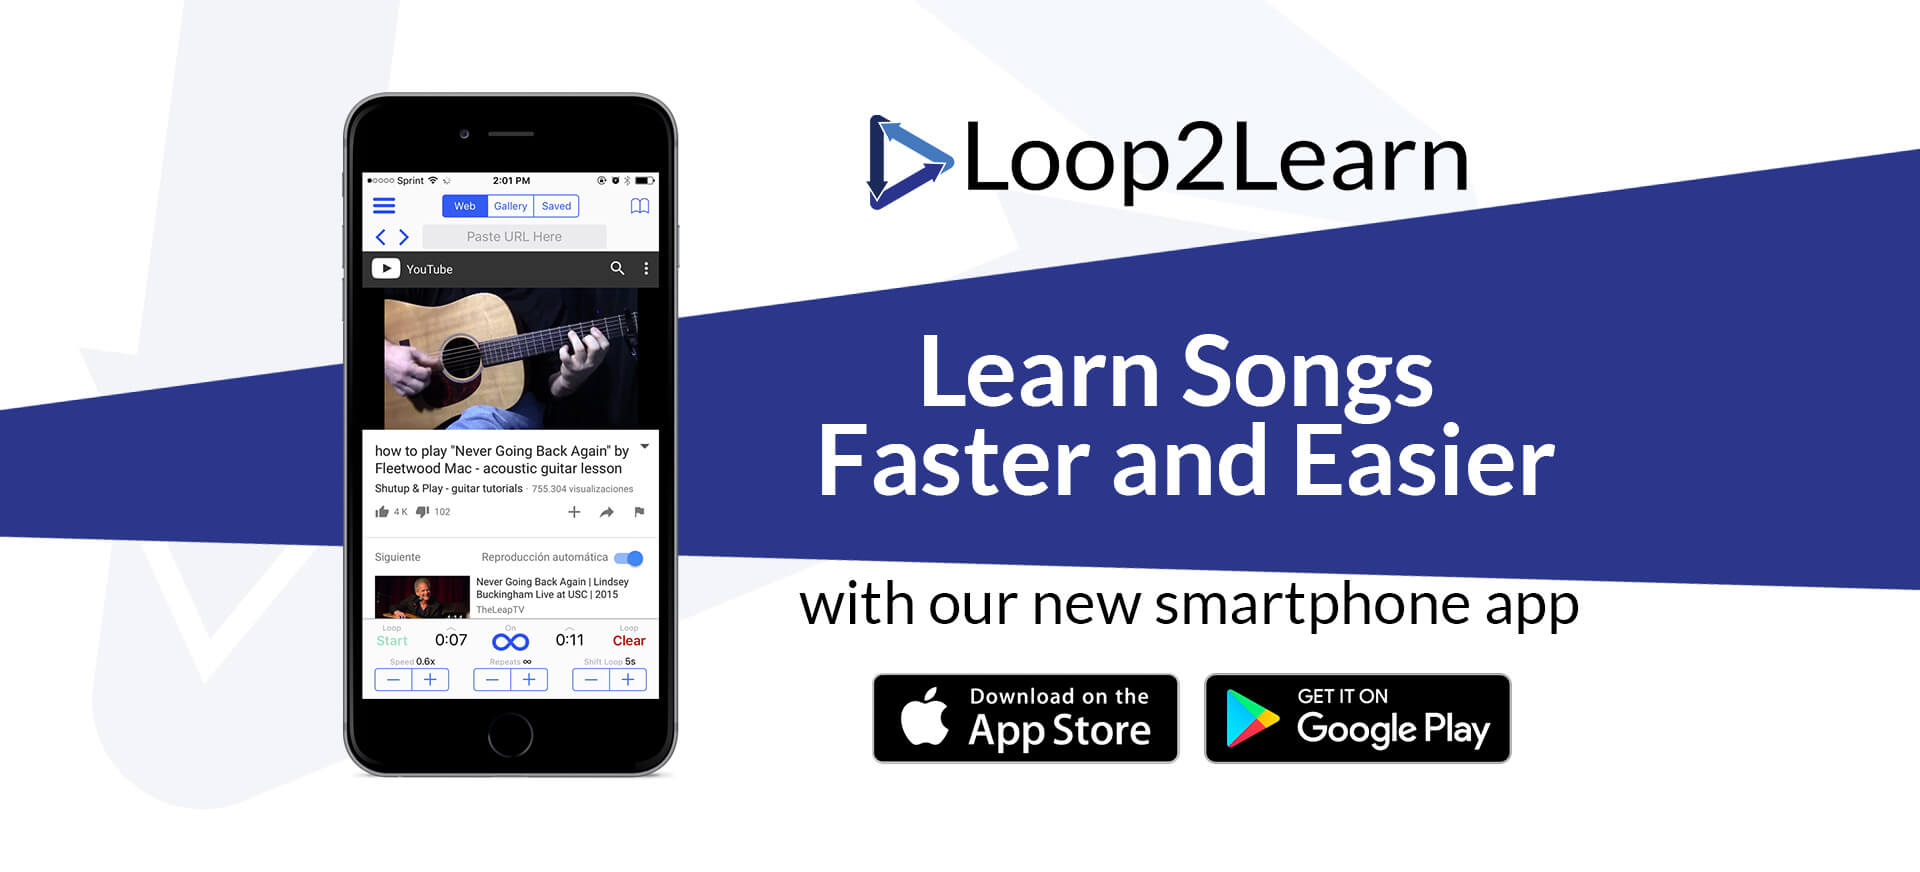 Learn Songs Faster and Easier. Loop2Learn makes learning songs from Youtube a breeze